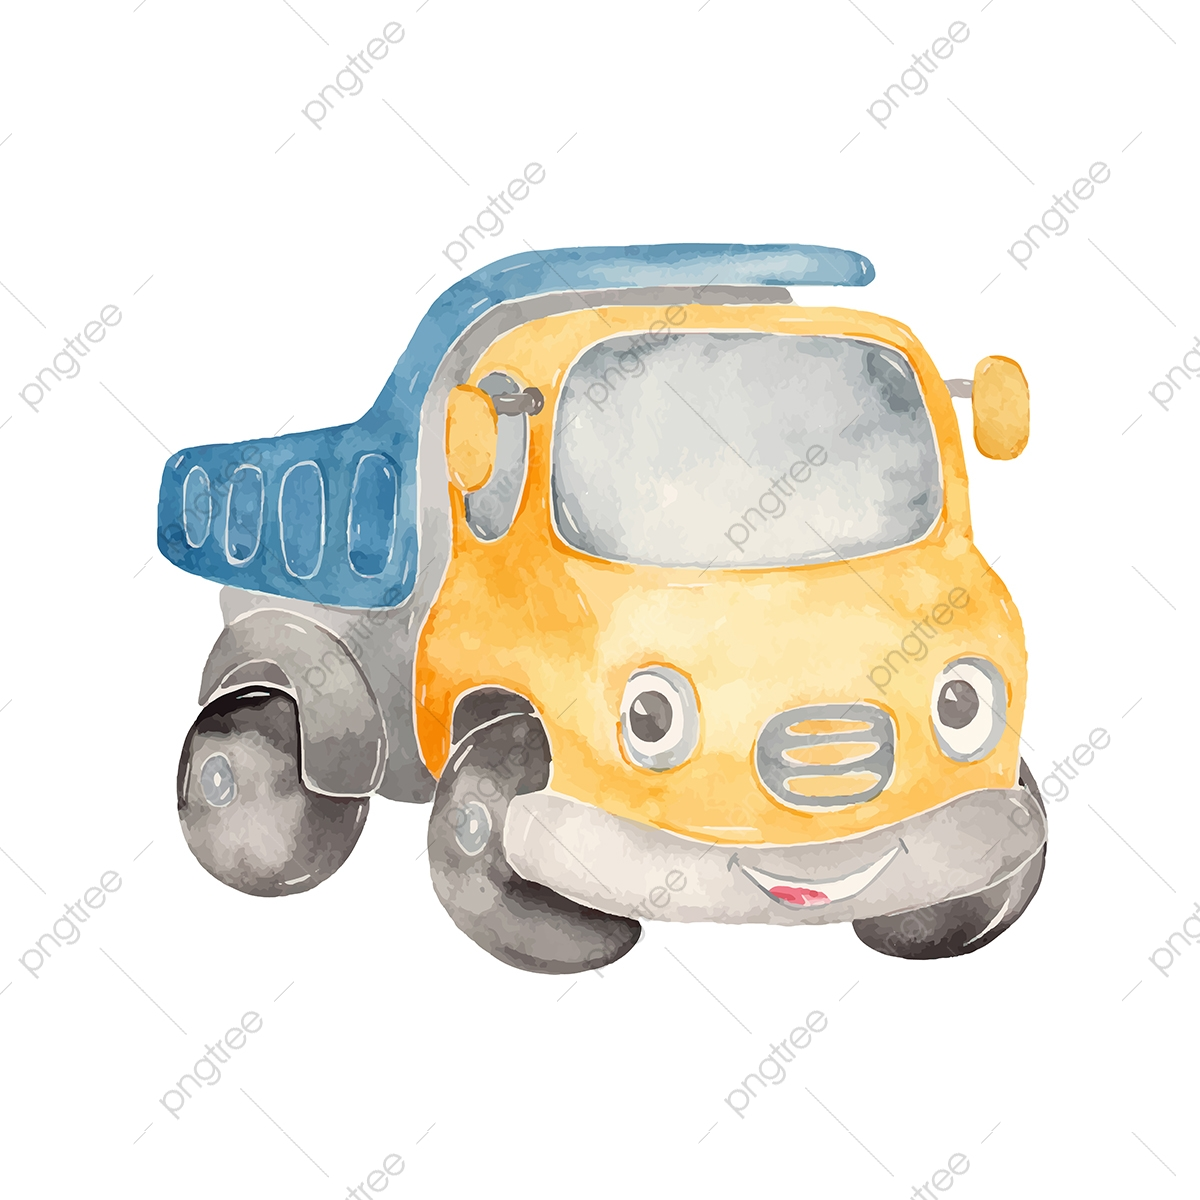 Watercolor Cute Cartoon Truck Clipart Auto Automobile Baby Png And Vector With Transparent Background For Free Download